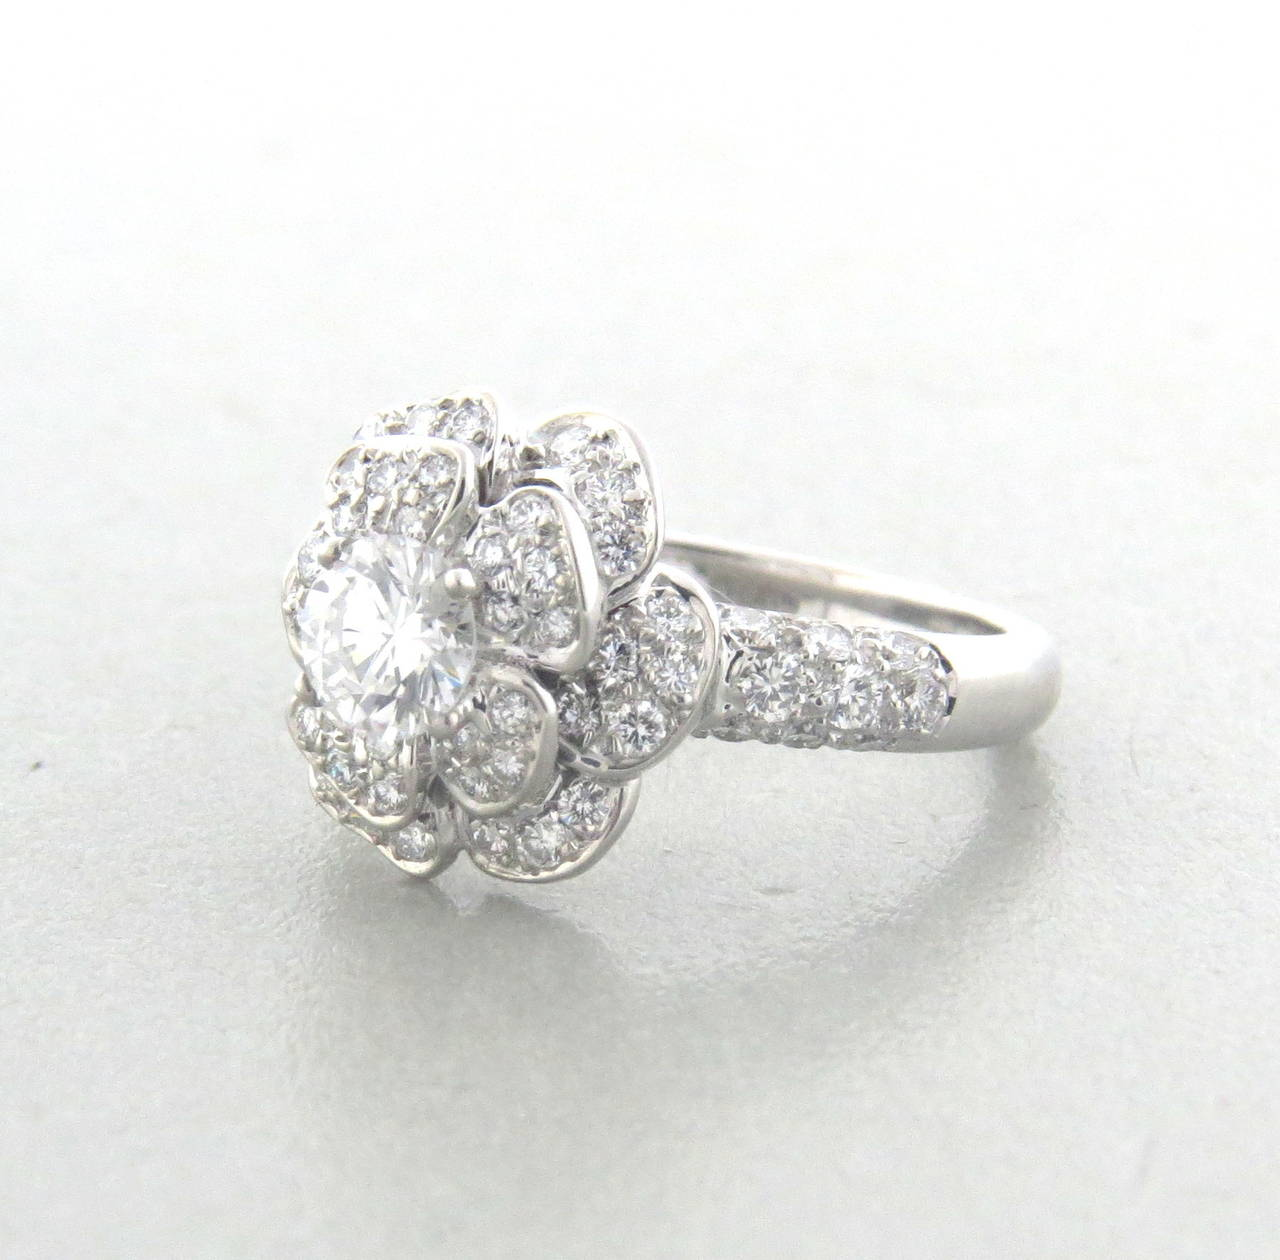 j a at form jewelry an with rings ring diamond flower in set img gold l id of bridal chanel camellia the white engagement